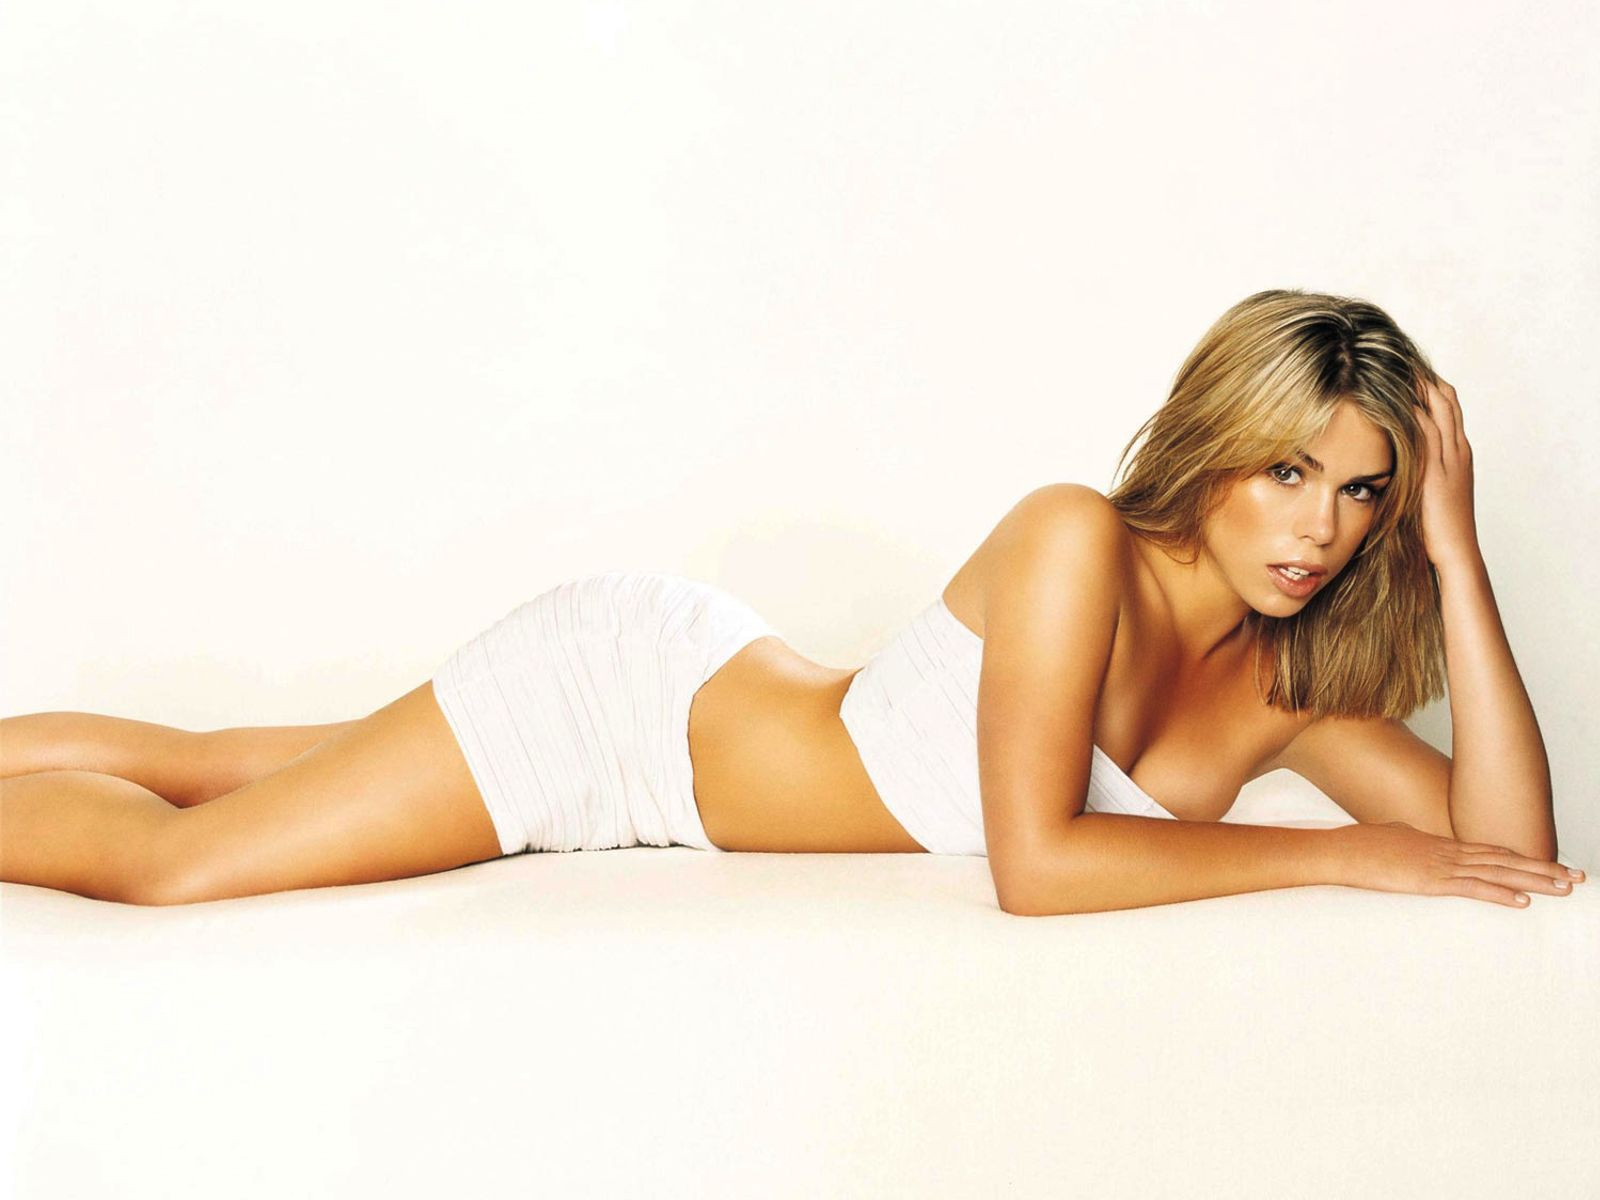 Hot billie piper 39 s wallpapers world amazing wallpapers for Hot wallpapers world